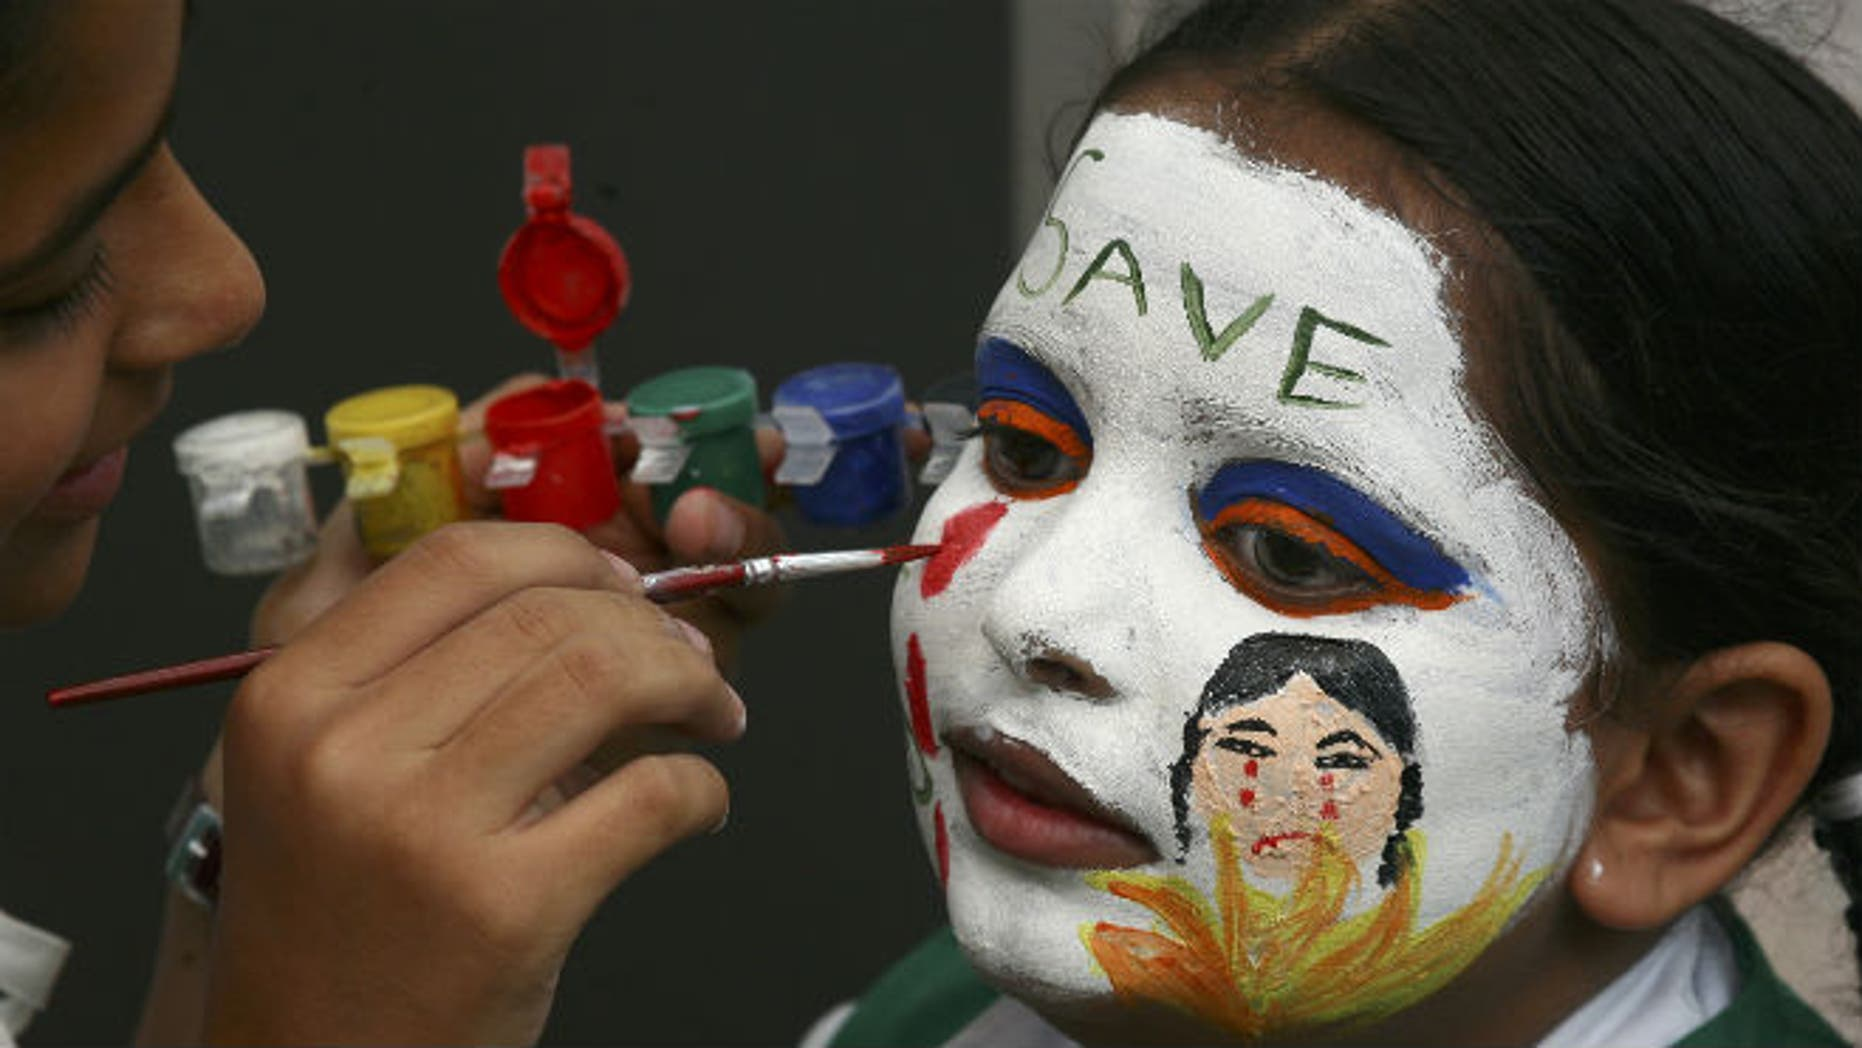 A girl gets her face painted with an awareness message on female foeticide during a face-painting competition in the northern Indian city of Chandigarh August 1, 2009. (REUTERS/Ajay Verma)